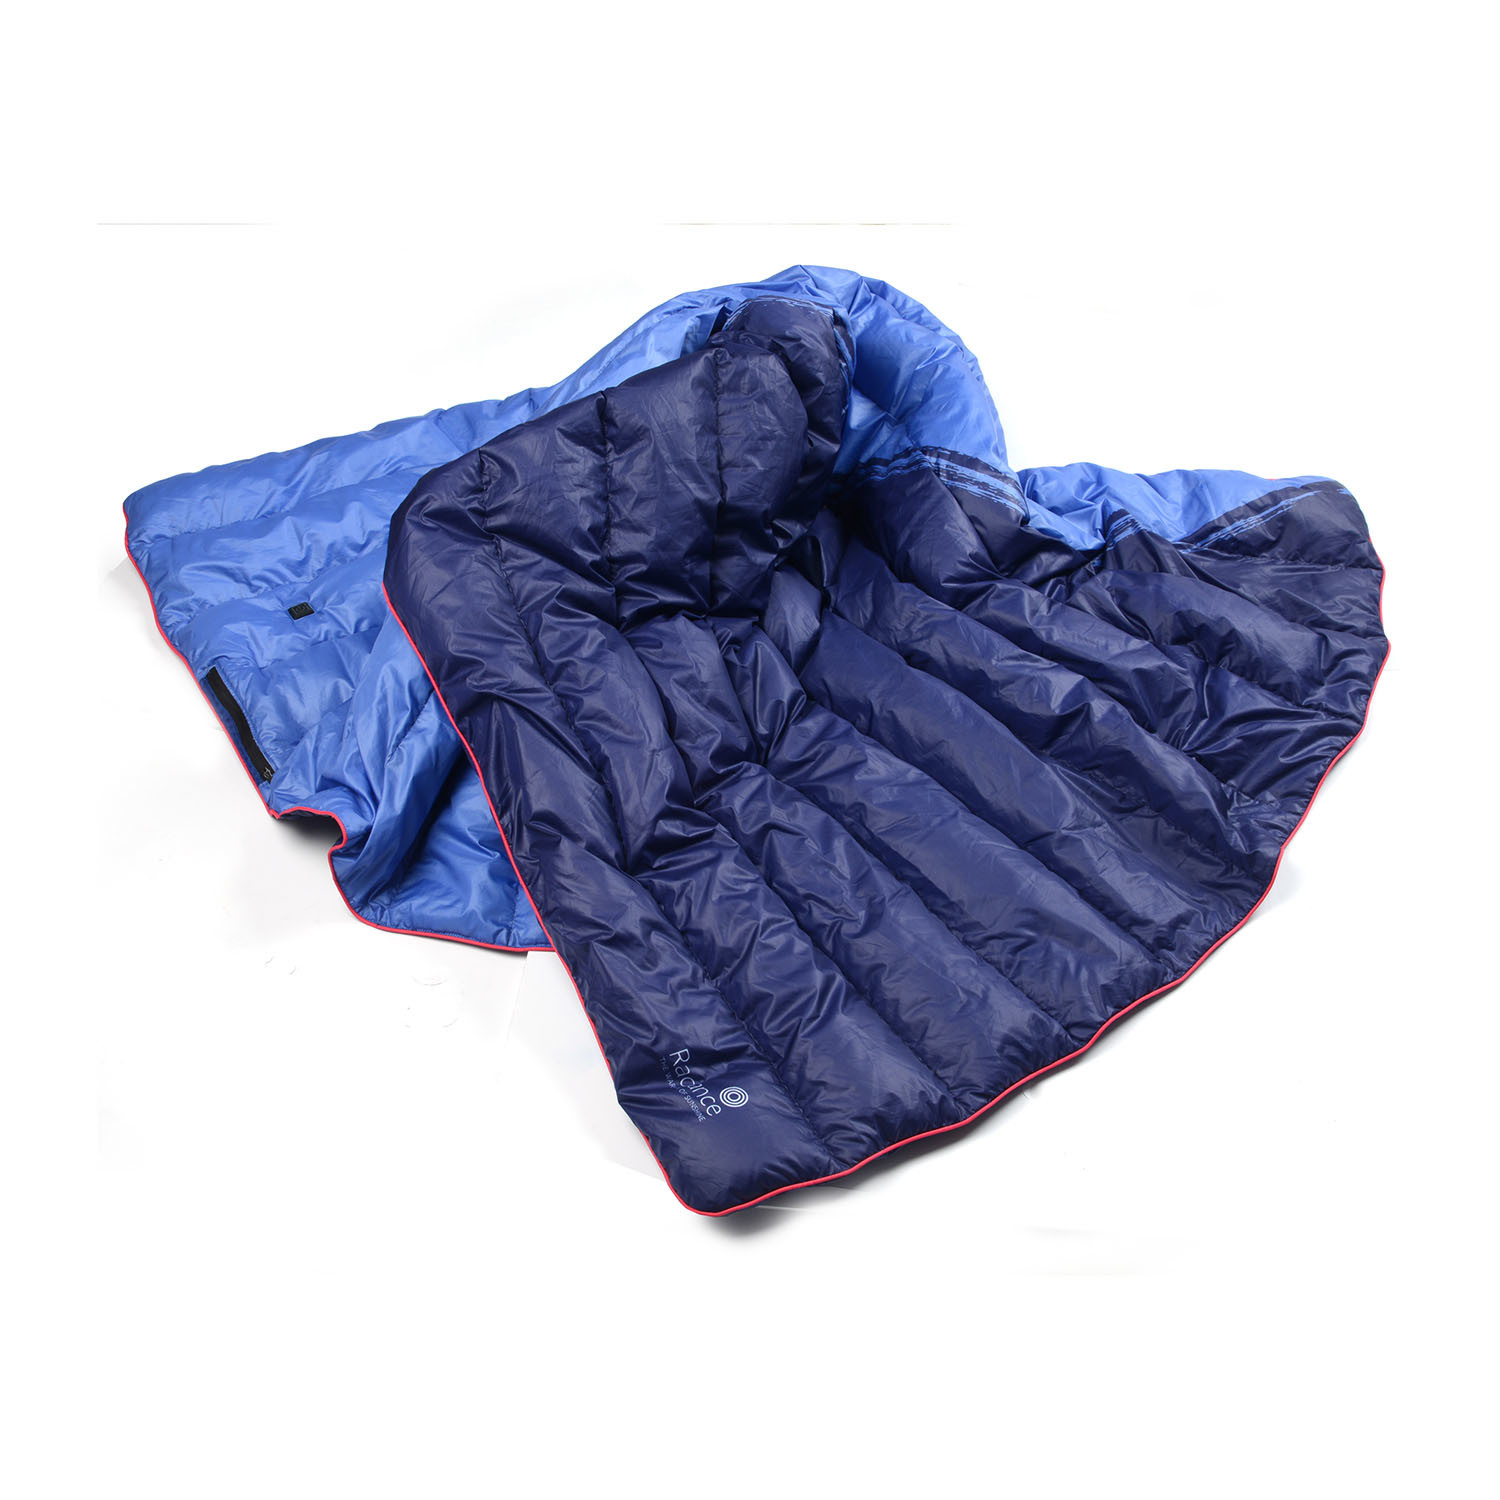 Goose Down Outdoor Heated Blanket Blue Large